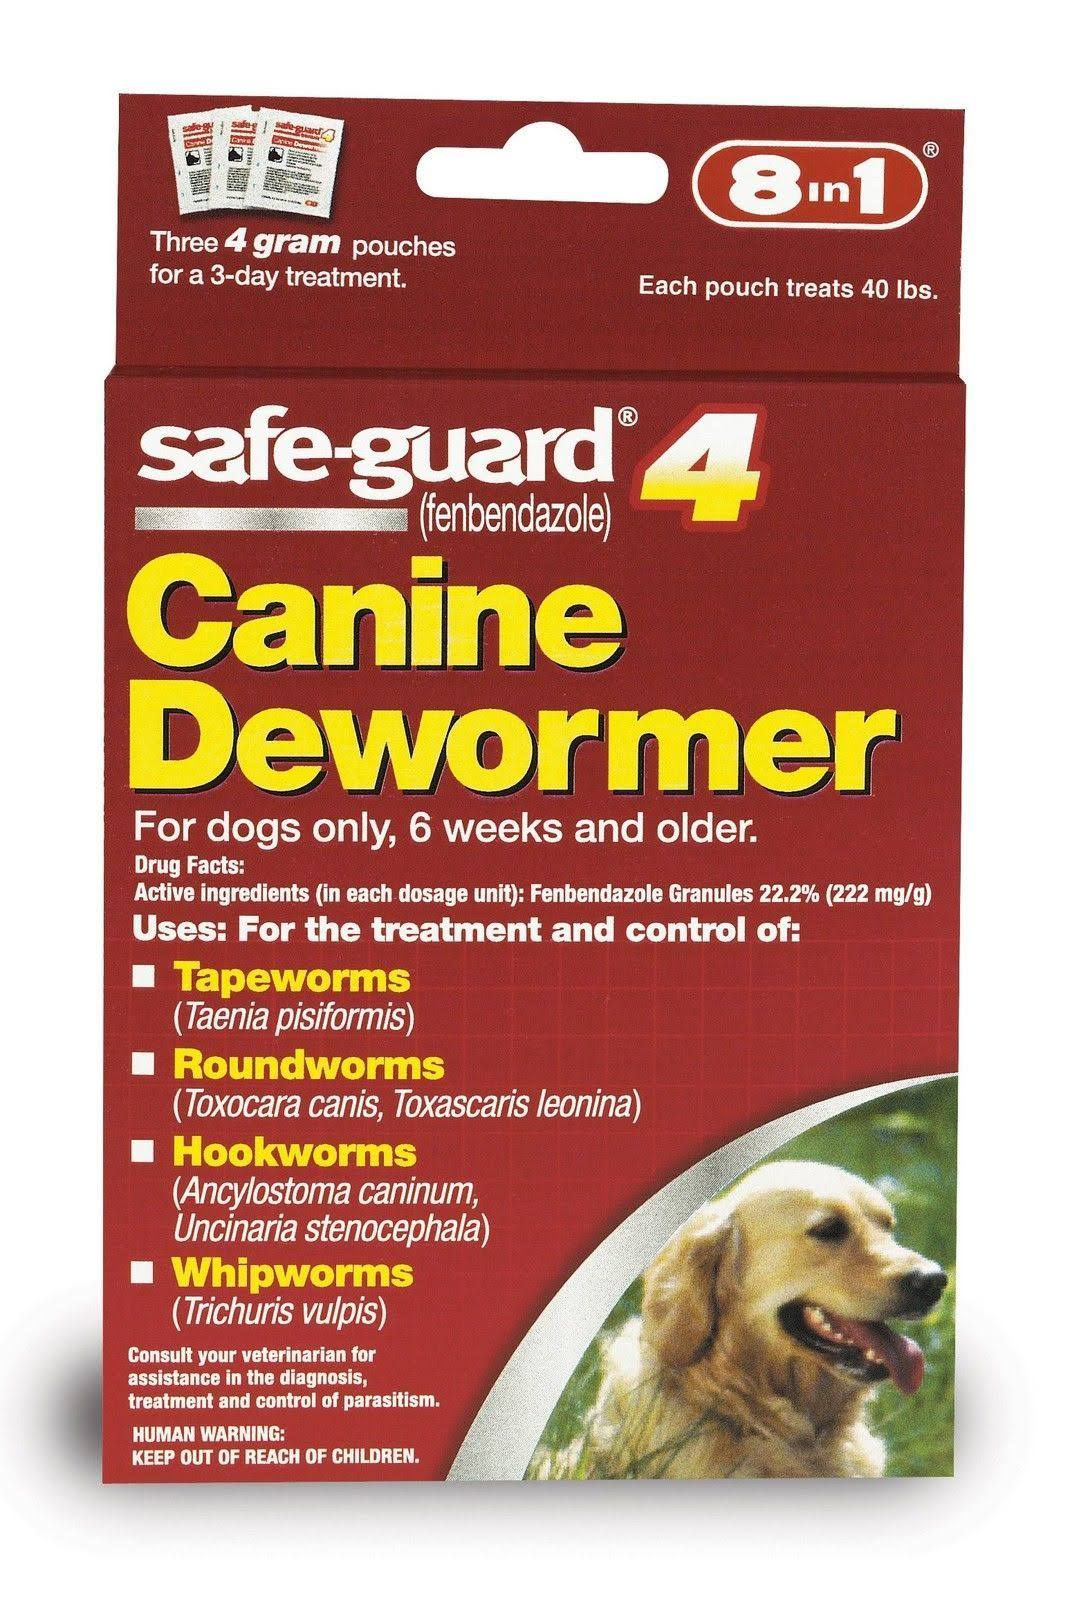 Aquaculture Safe-Guard 4 Canine Dewormer, 4G, 3-Pack